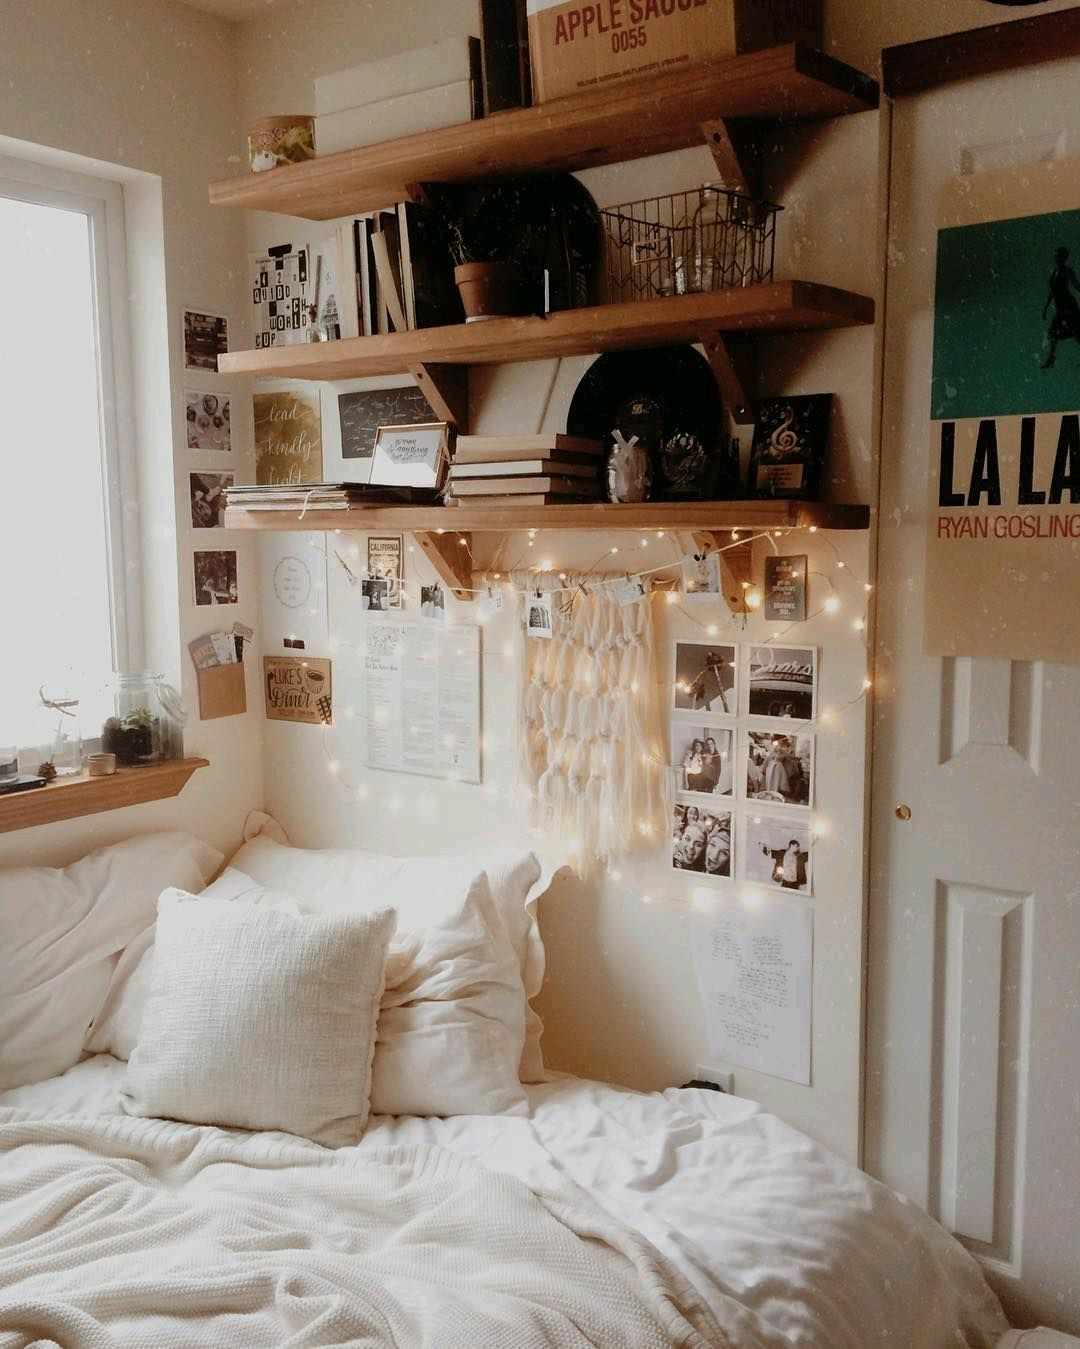 tumblr bedrooms Photo tumblr bedrooms